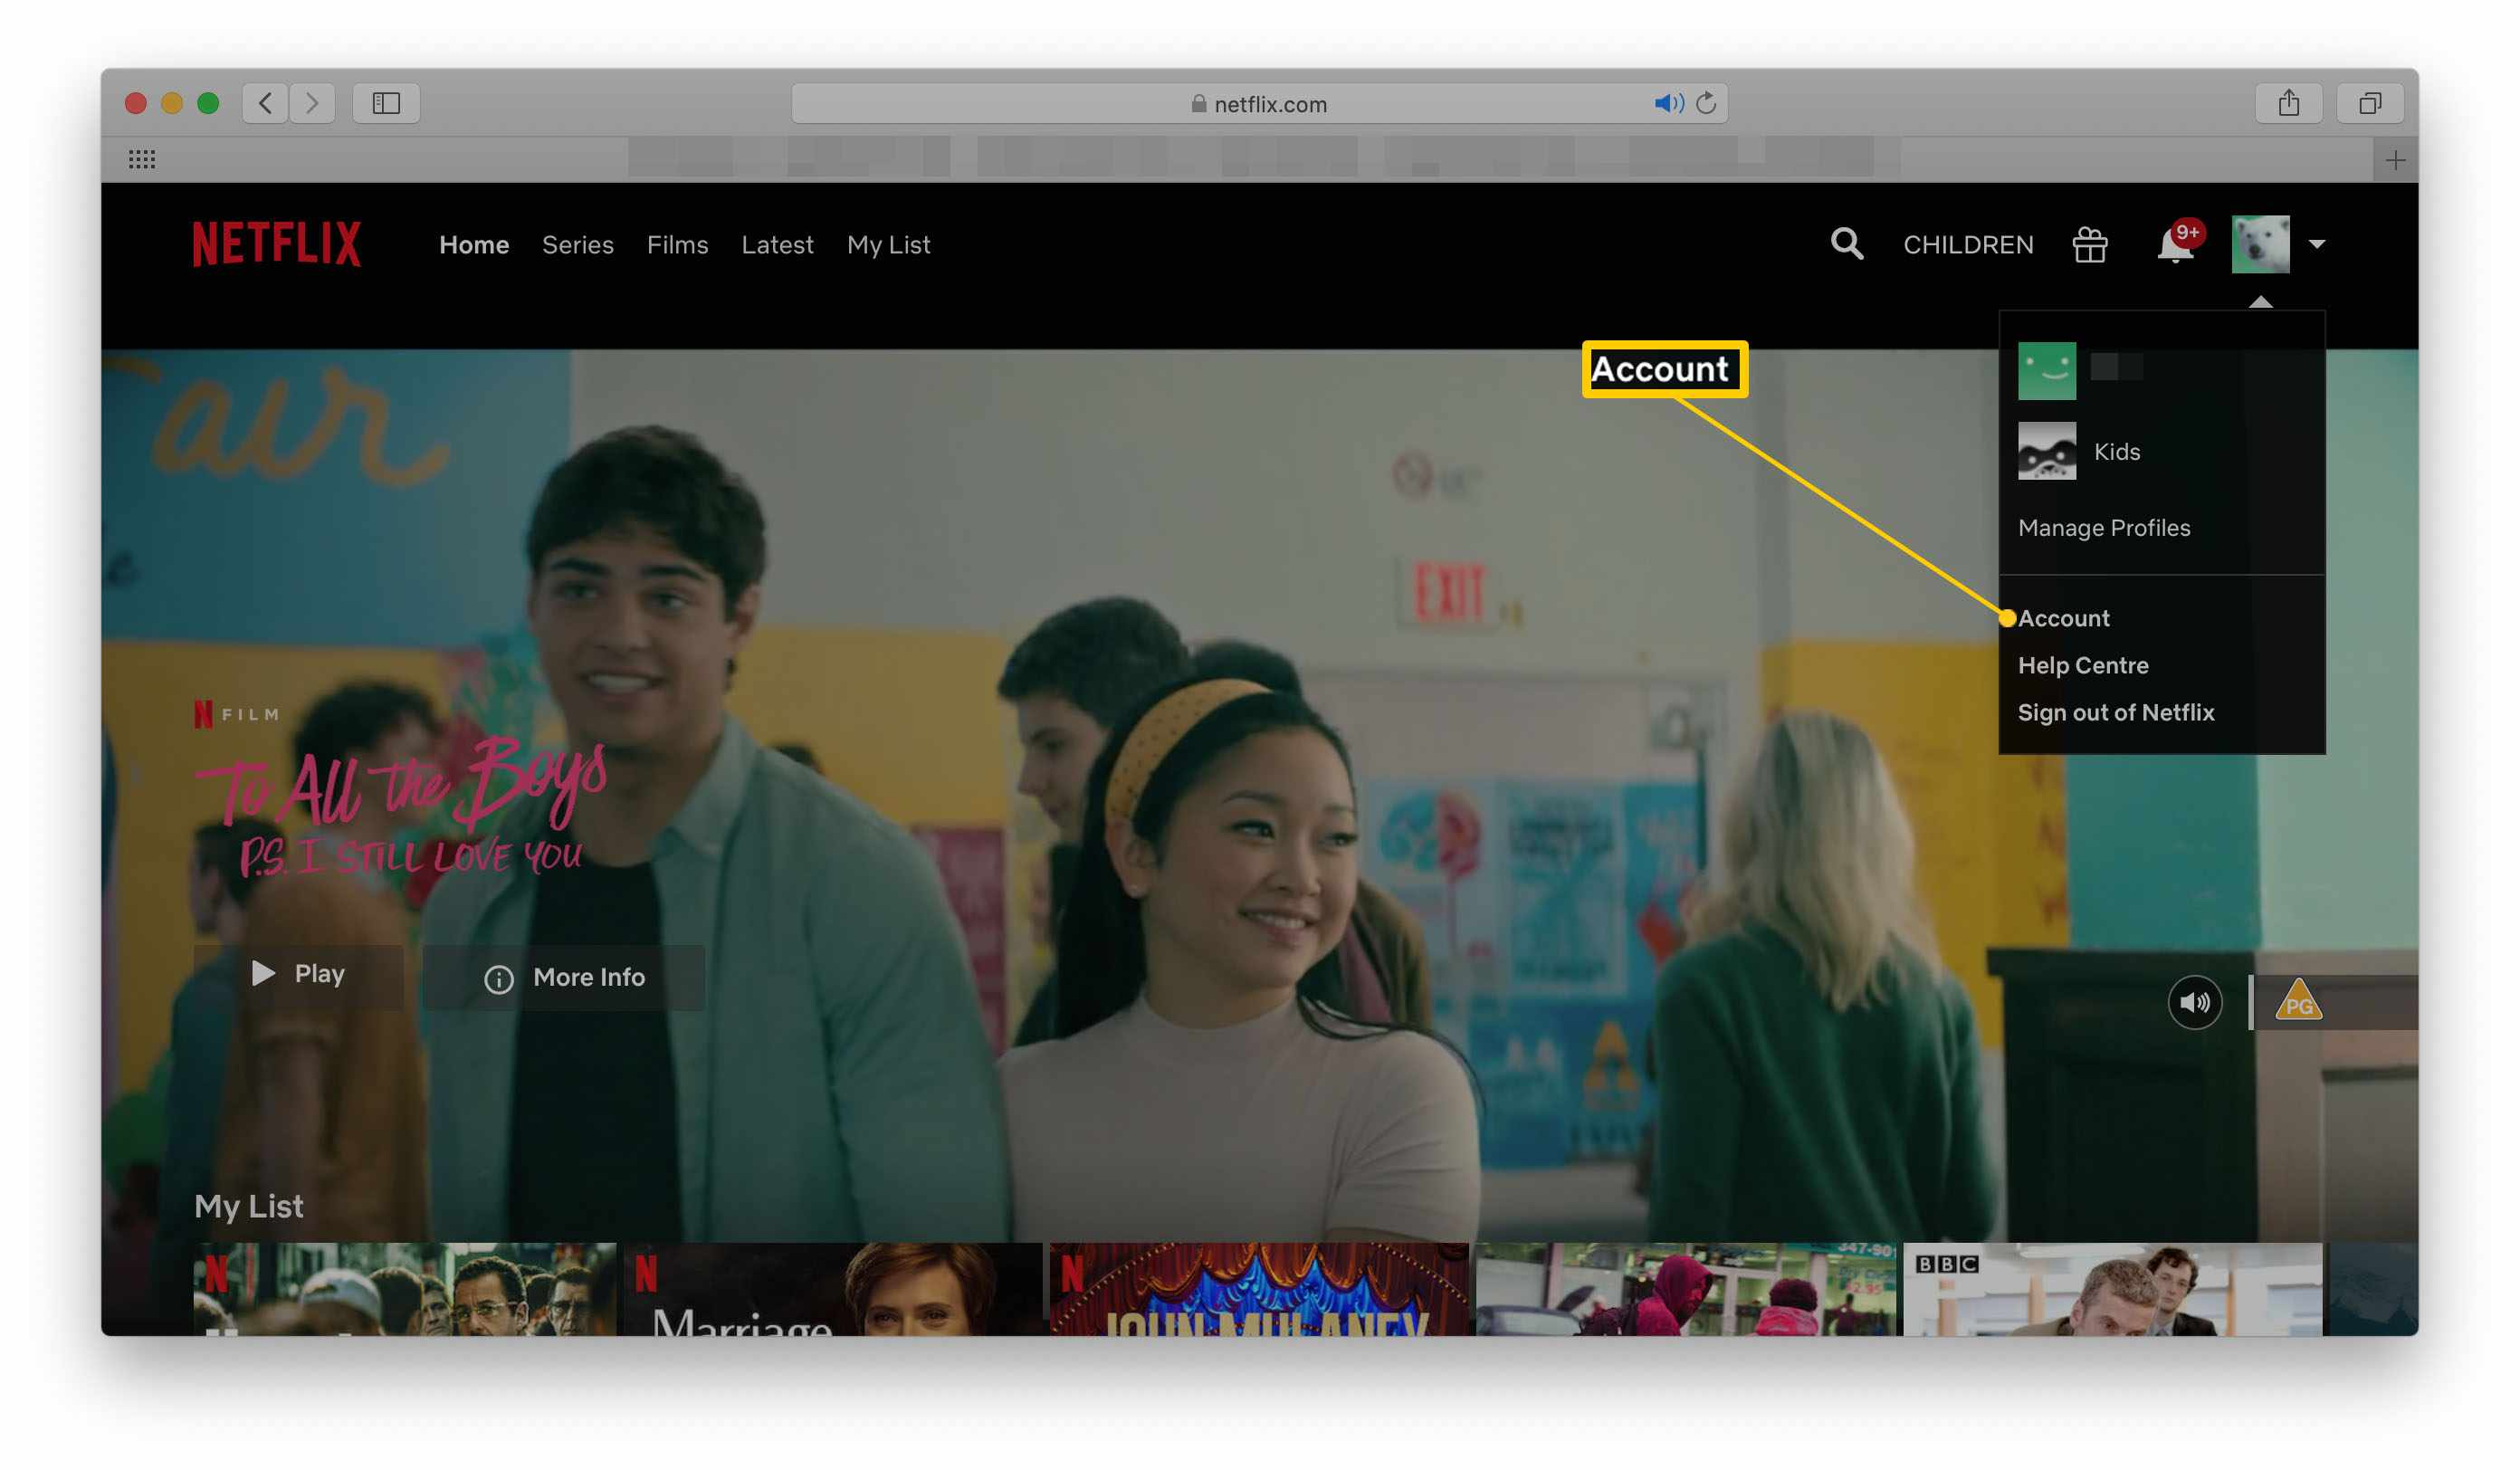 Netflix home page with account option highlighted